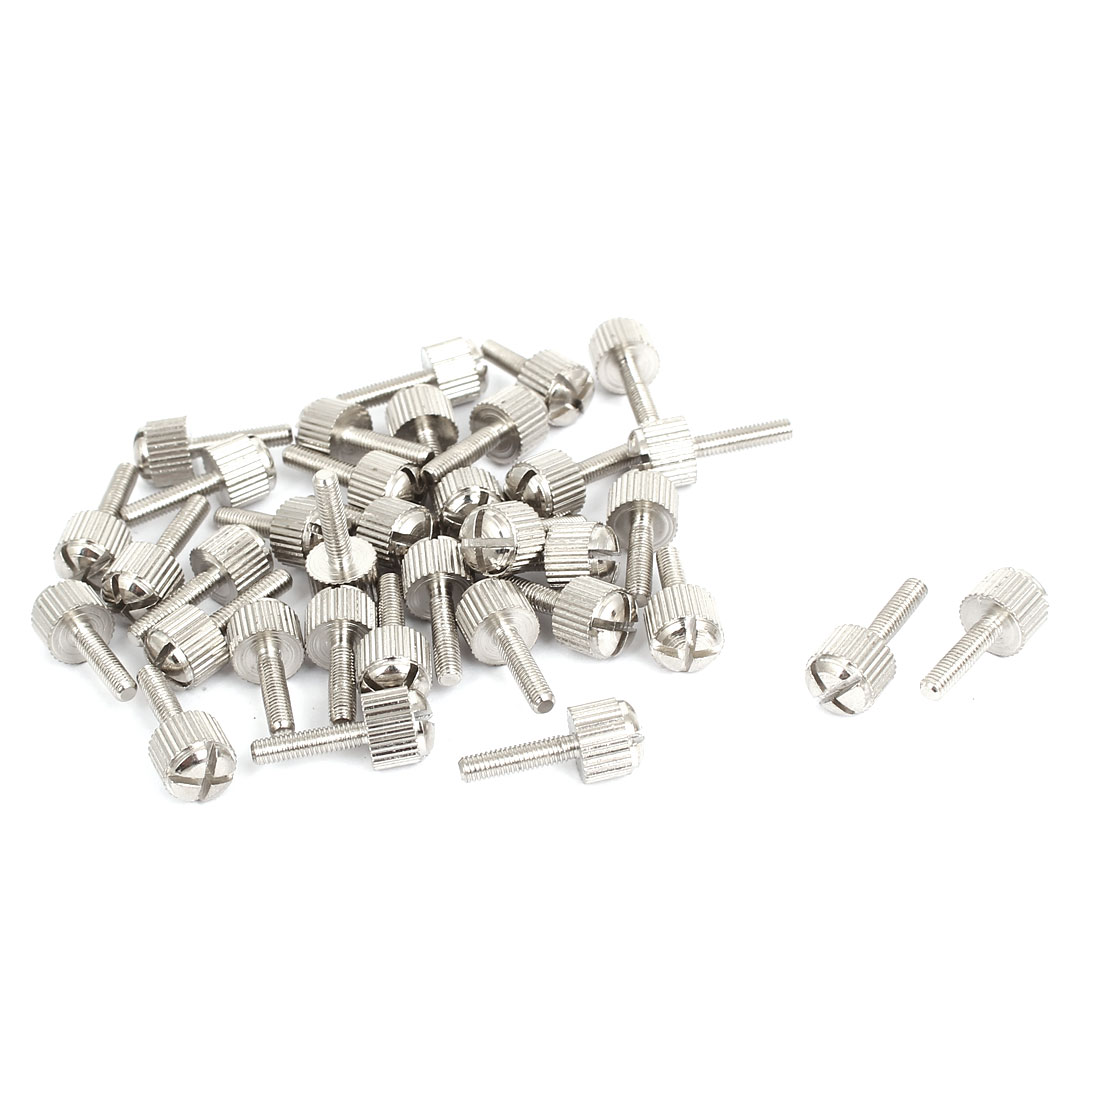 Computer PC Case Metal Knurled Head Phillips Thumb Screws M3x12mm 35pcs